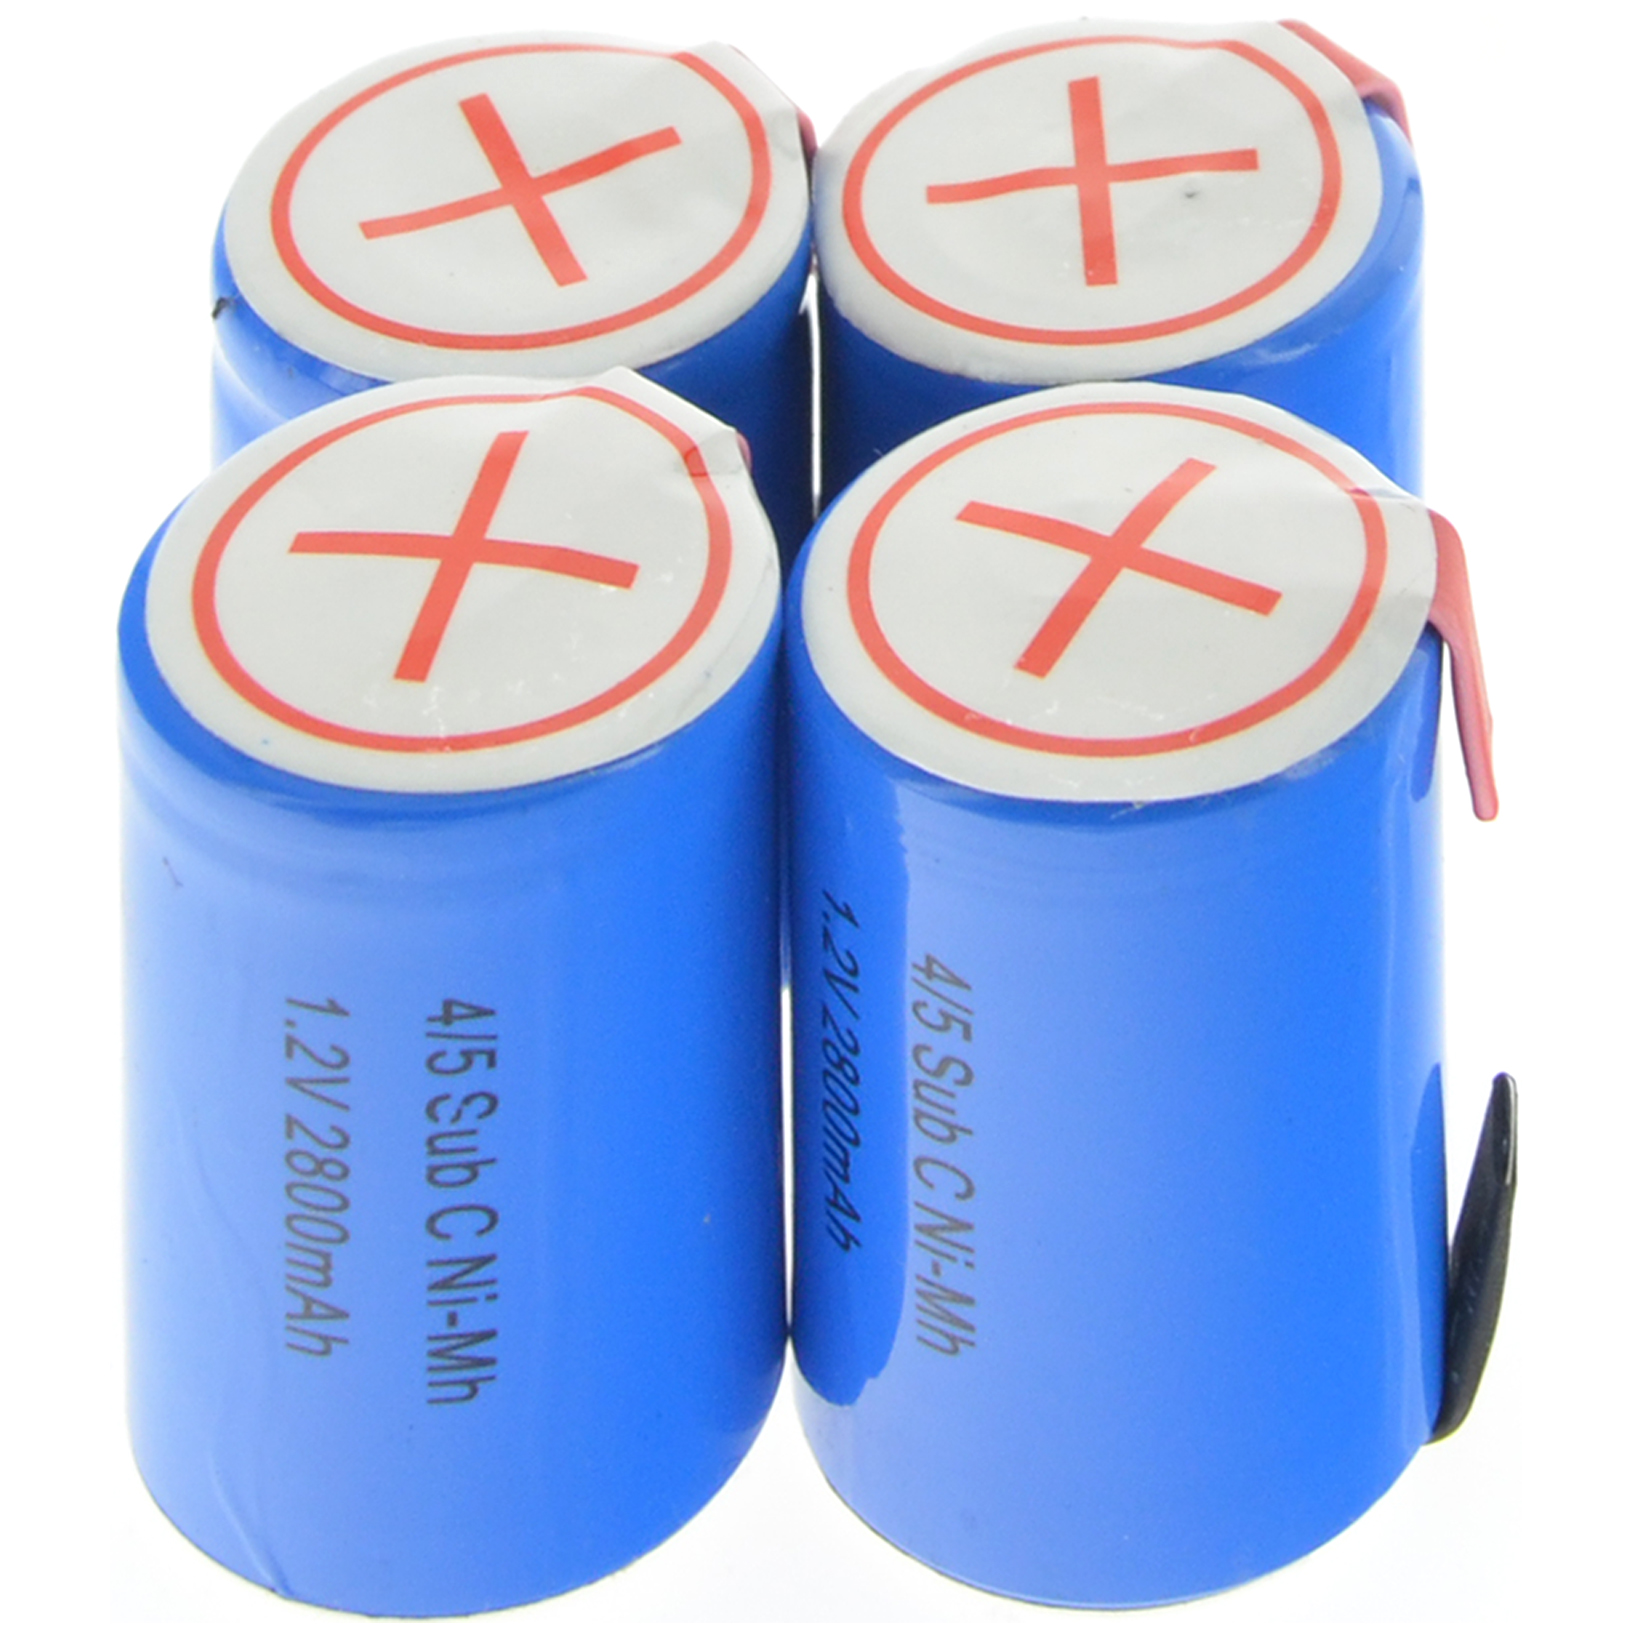 1/2/4/8/12/16/20pcs 4/5 SubC Sub C 2800mAh 12pcs 1.2V Ni-Mh Rechargeable Battery Blue Cell With Tab